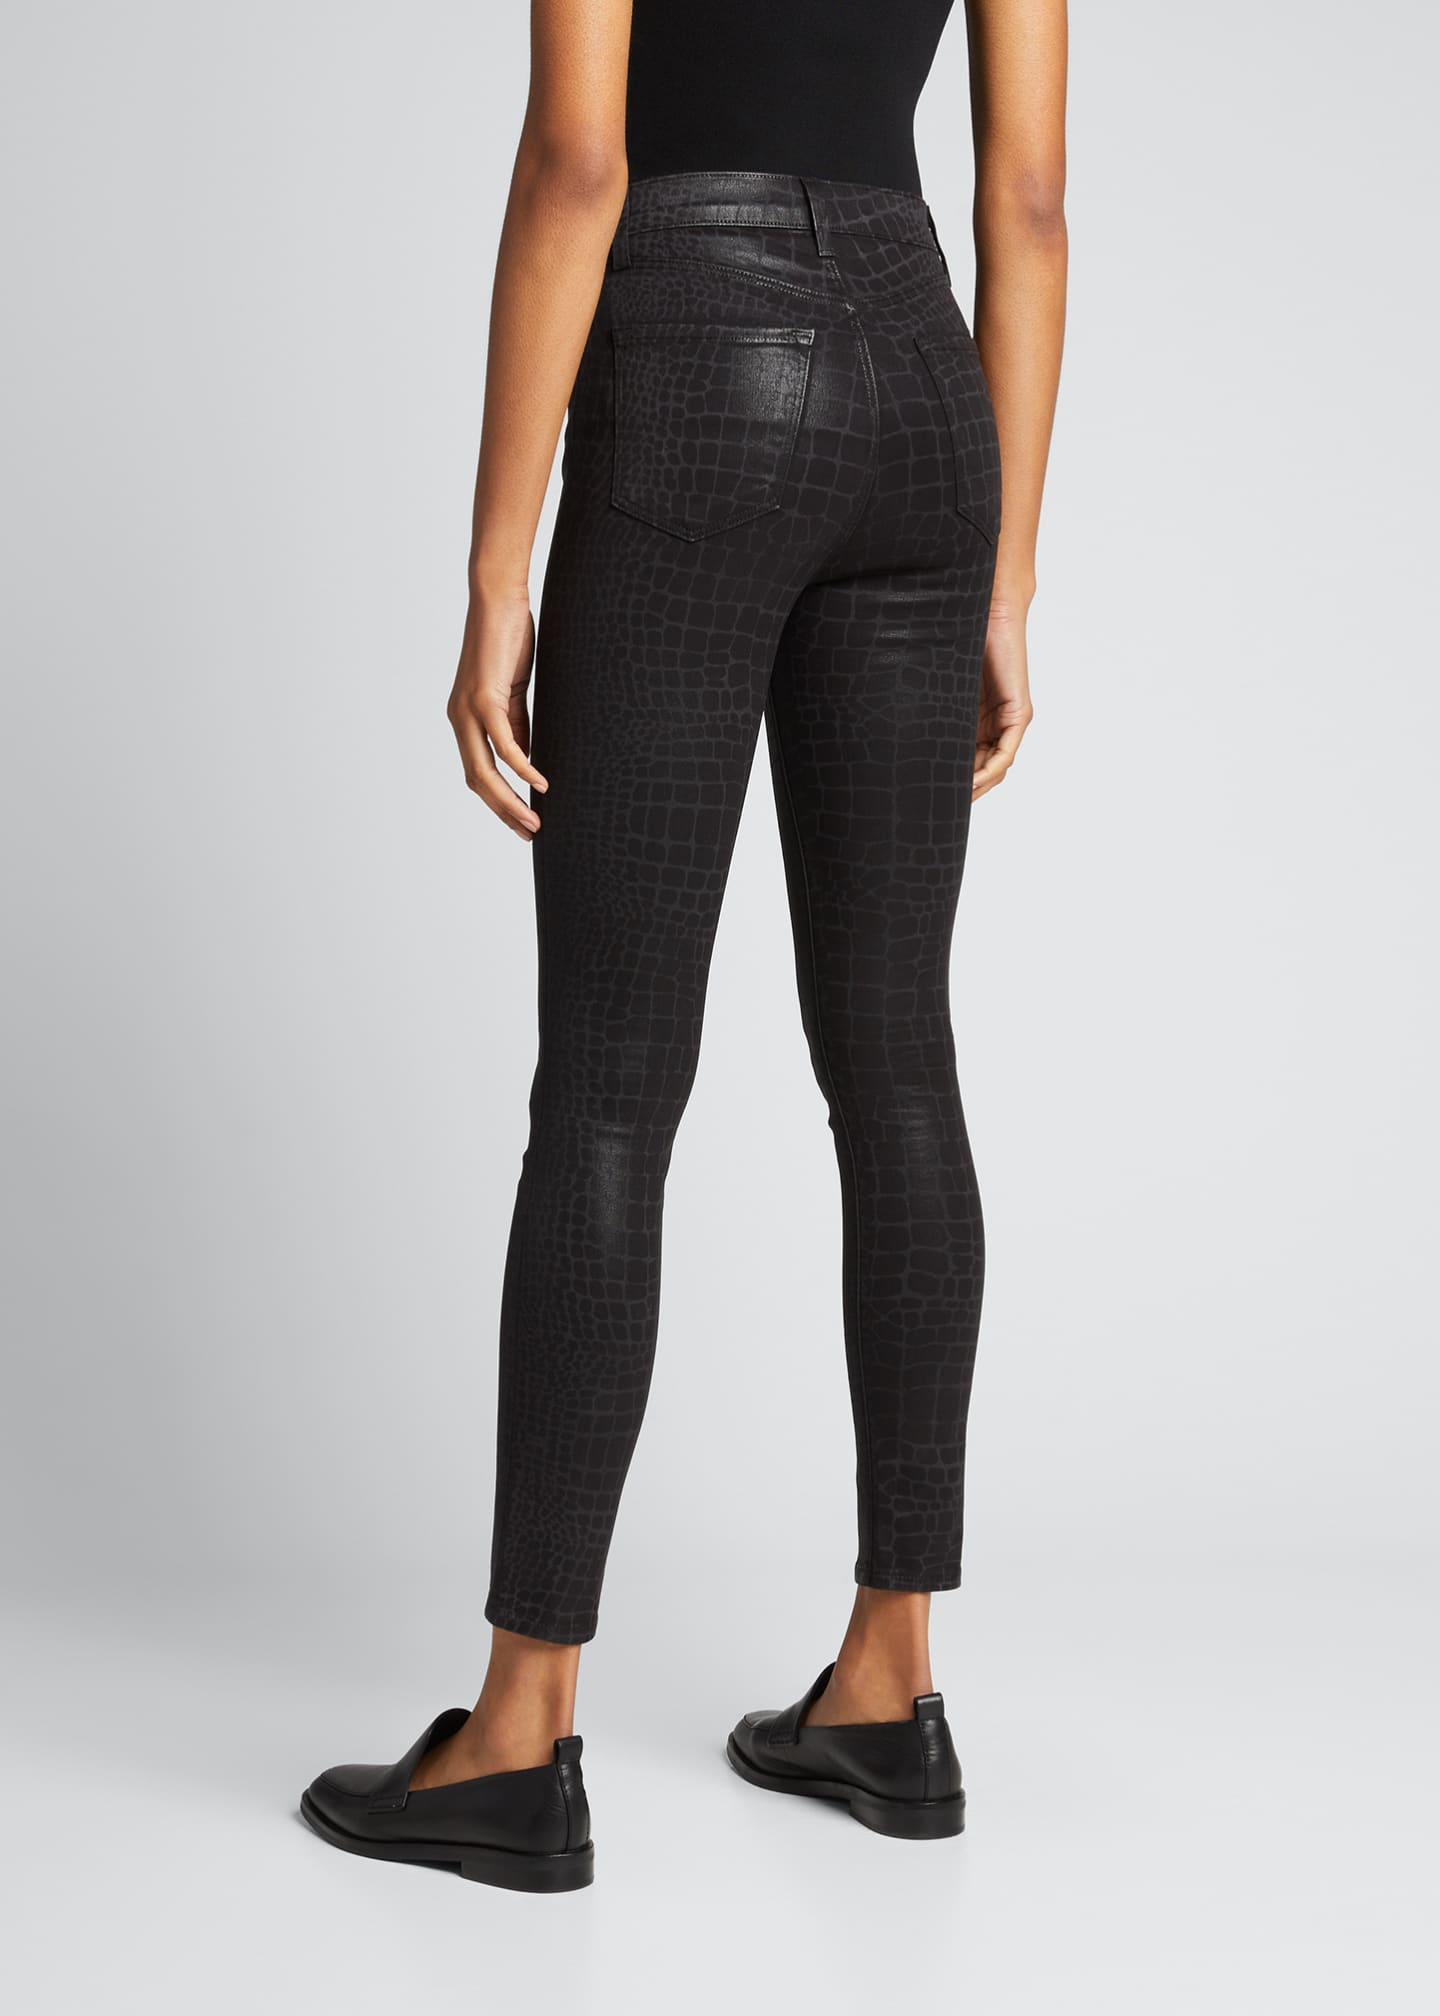 Image 2 of 5: Leenah Super High-Rise Coated Croc Skinny Jeans